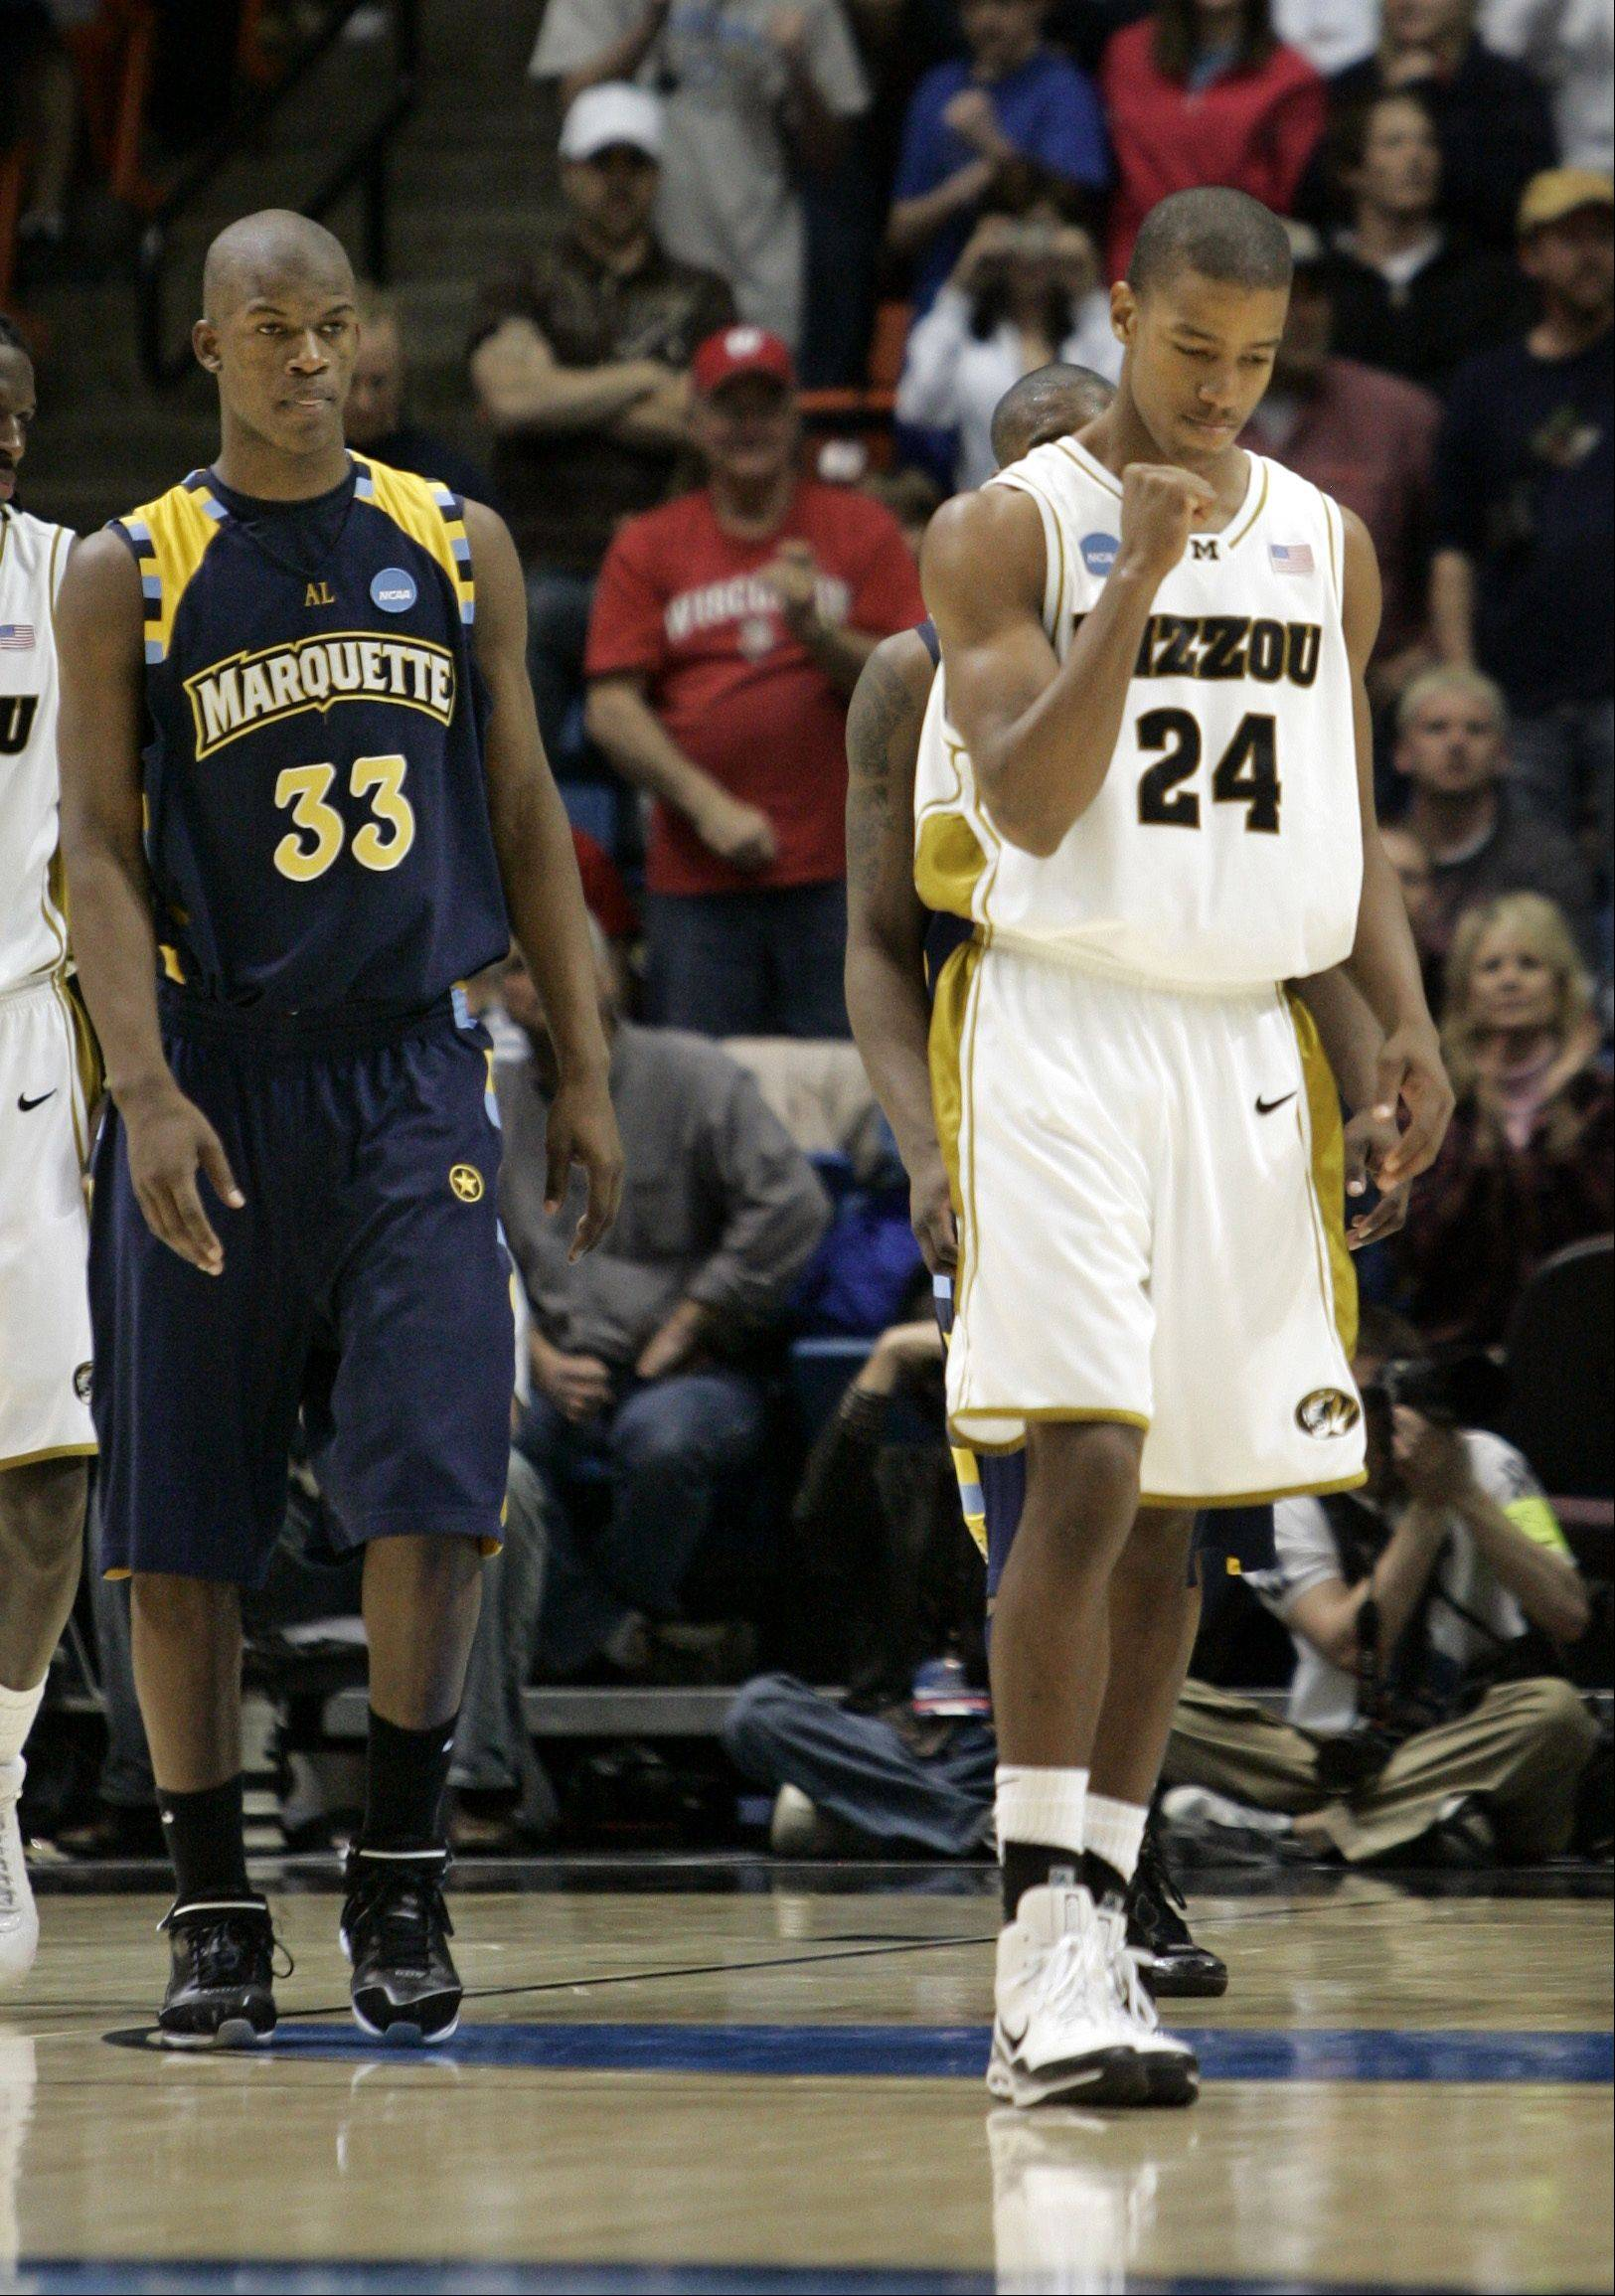 Missouri guard Kim English (24) celebrates in front of Marquette guard Jimmy Butler (33) after scoring two free throws to help defeat Marquette 83-79 in the last seconds of a second-round men's NCAA college basketball tournament game in Boise, Idaho, Sunday, March 22, 2009.